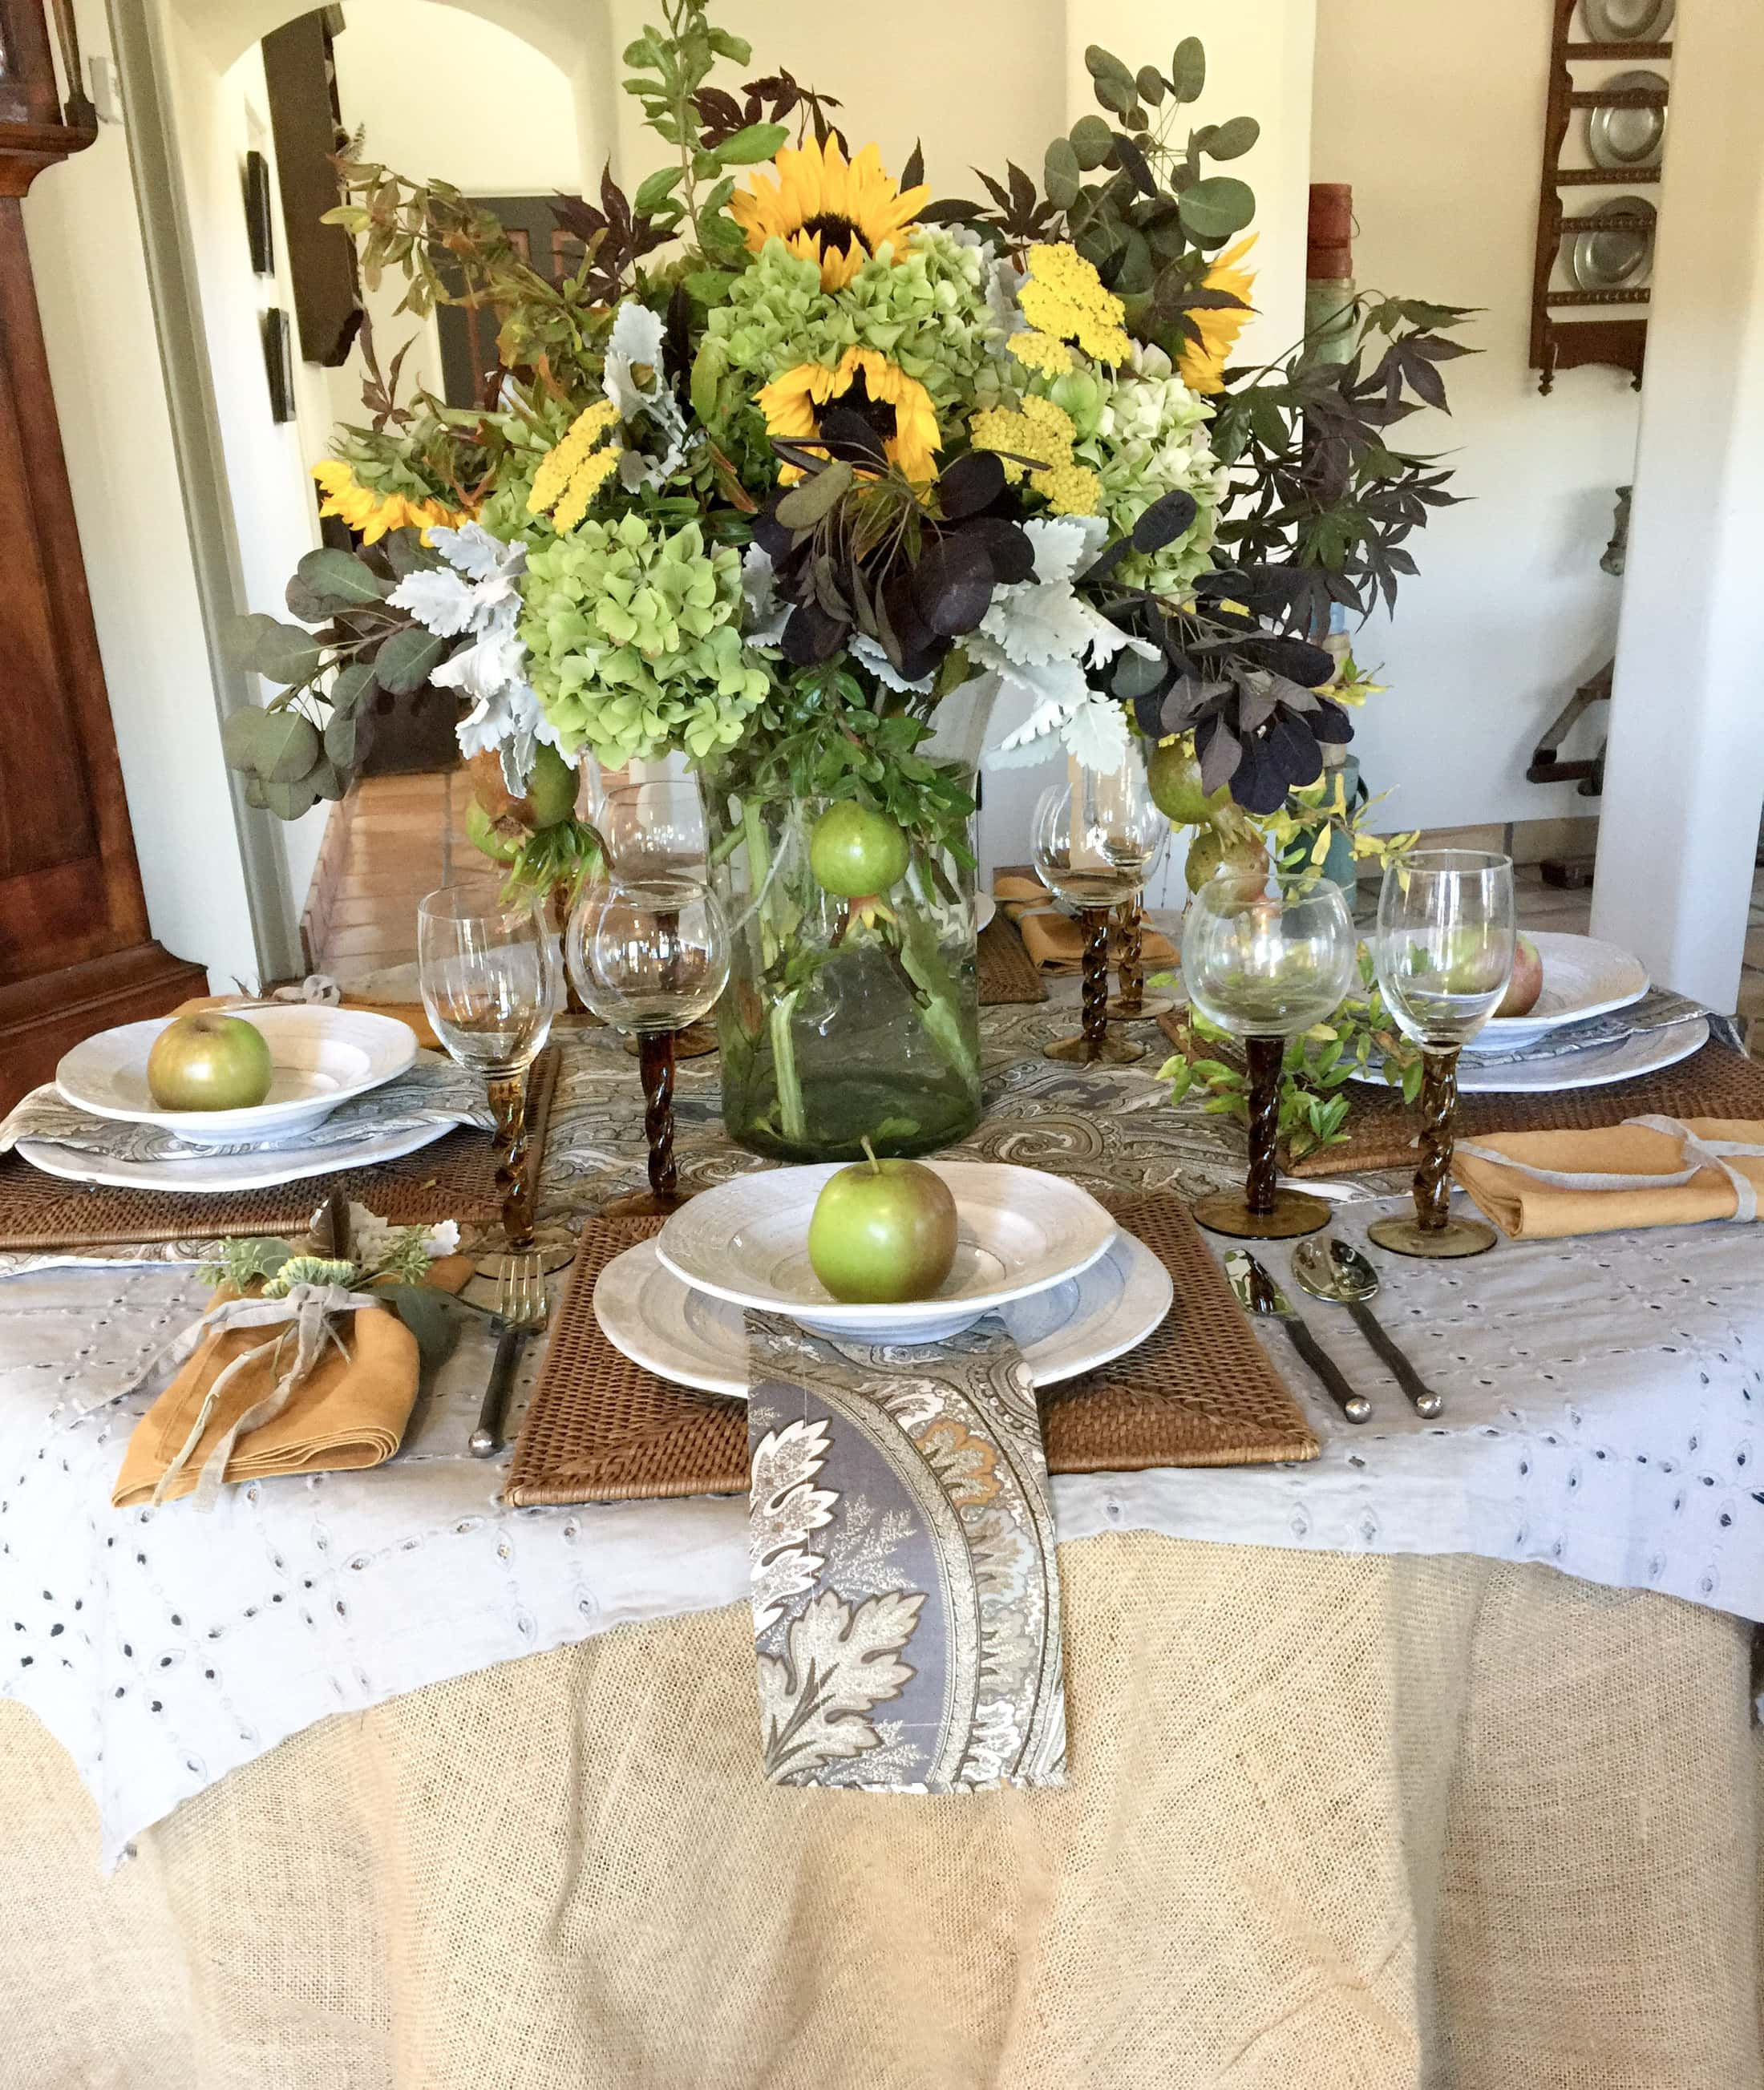 Beautiful fall floral centerpiece and tablescape for Thanksgiving